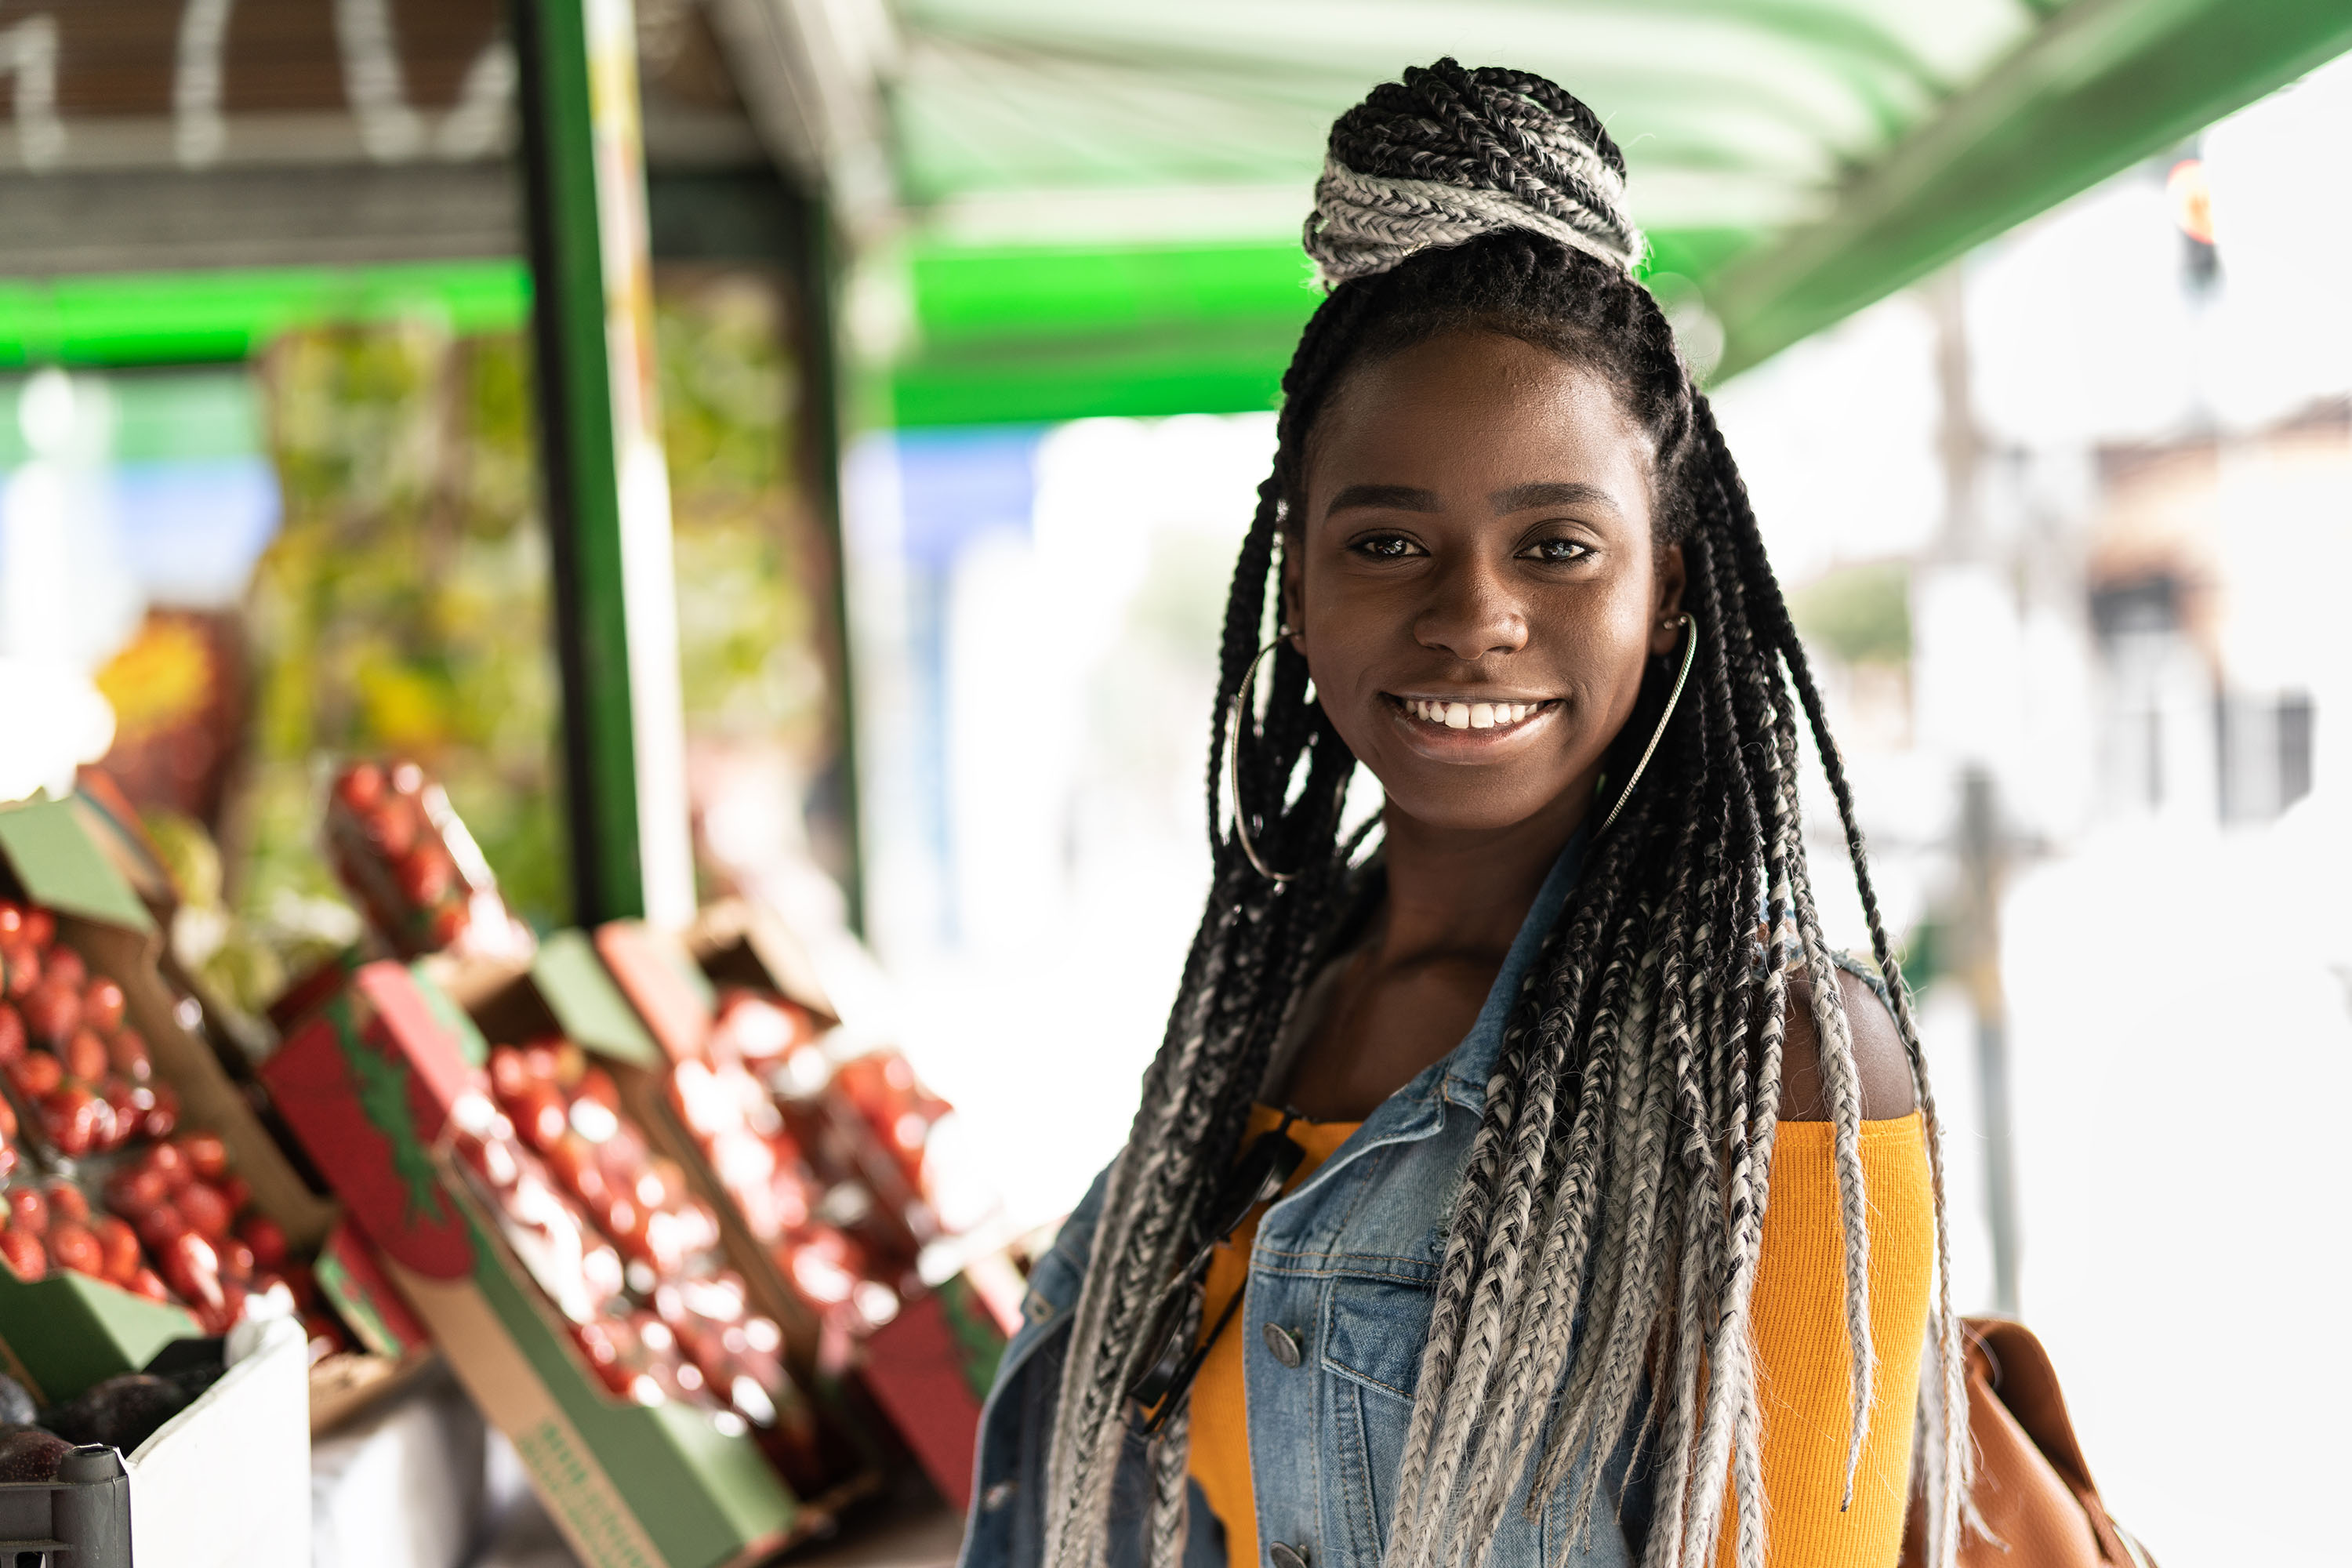 Impacts of Microfranchising on Young Women's Occupational Choices